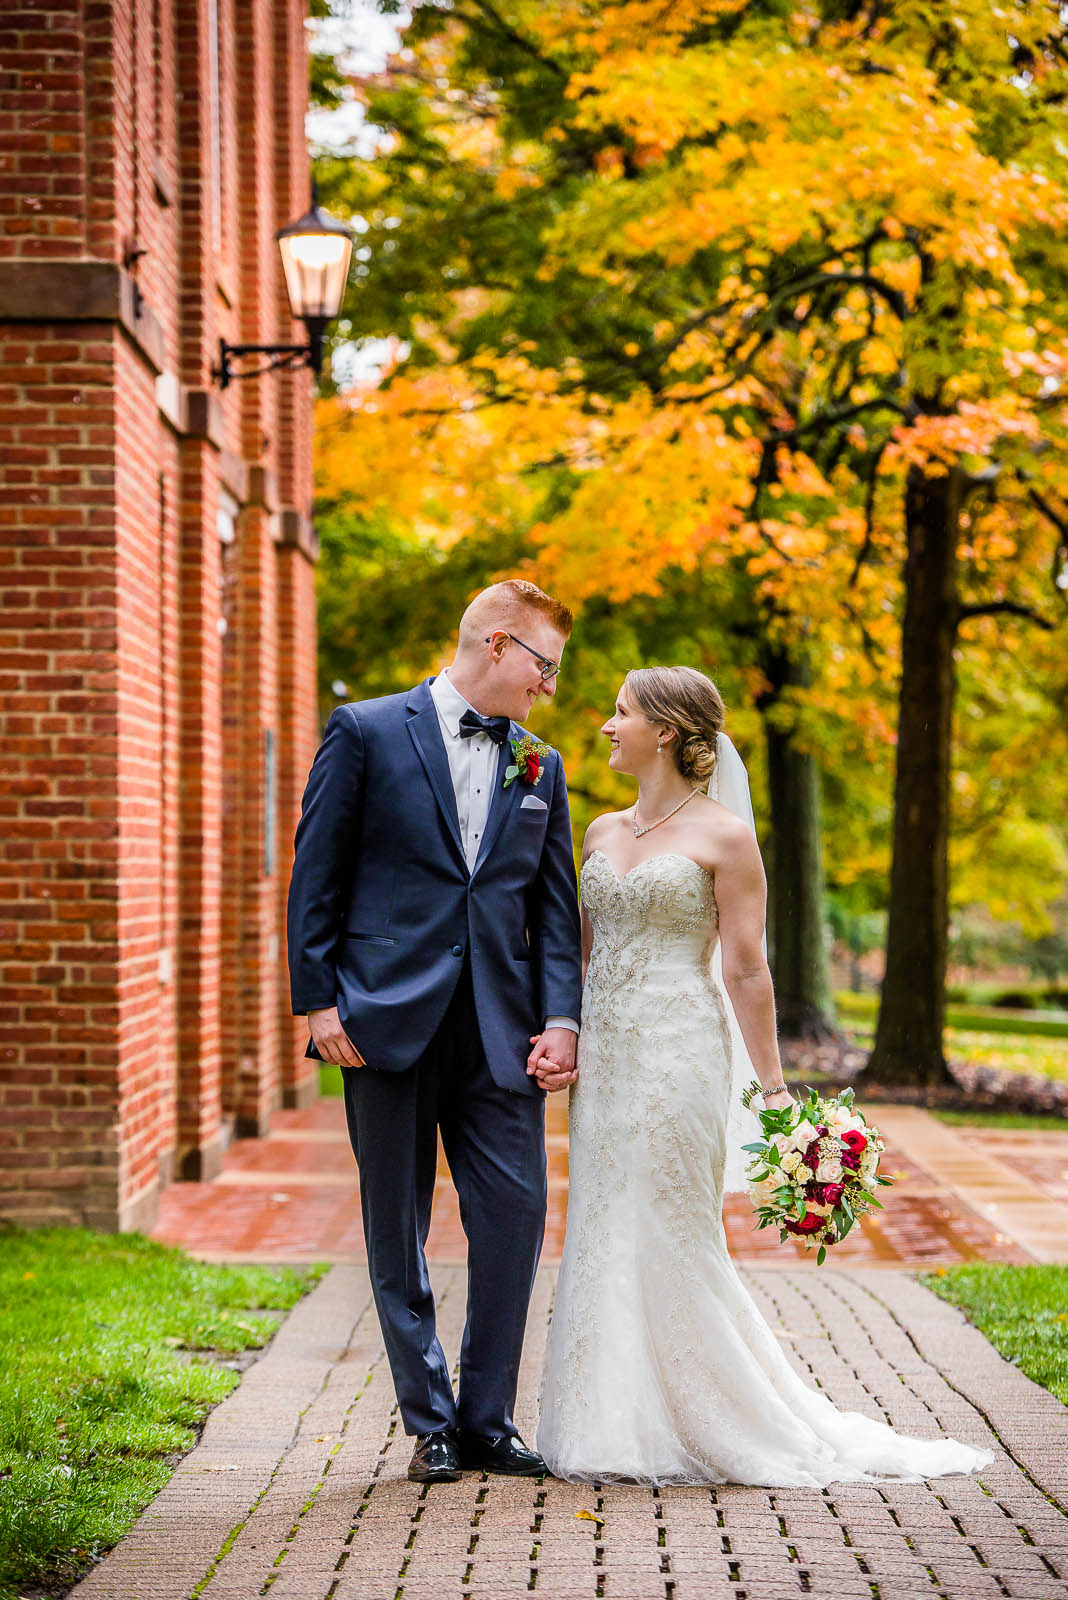 Eric_and_Christy_Photography_Blog_Wedding_Erica_Mike-36